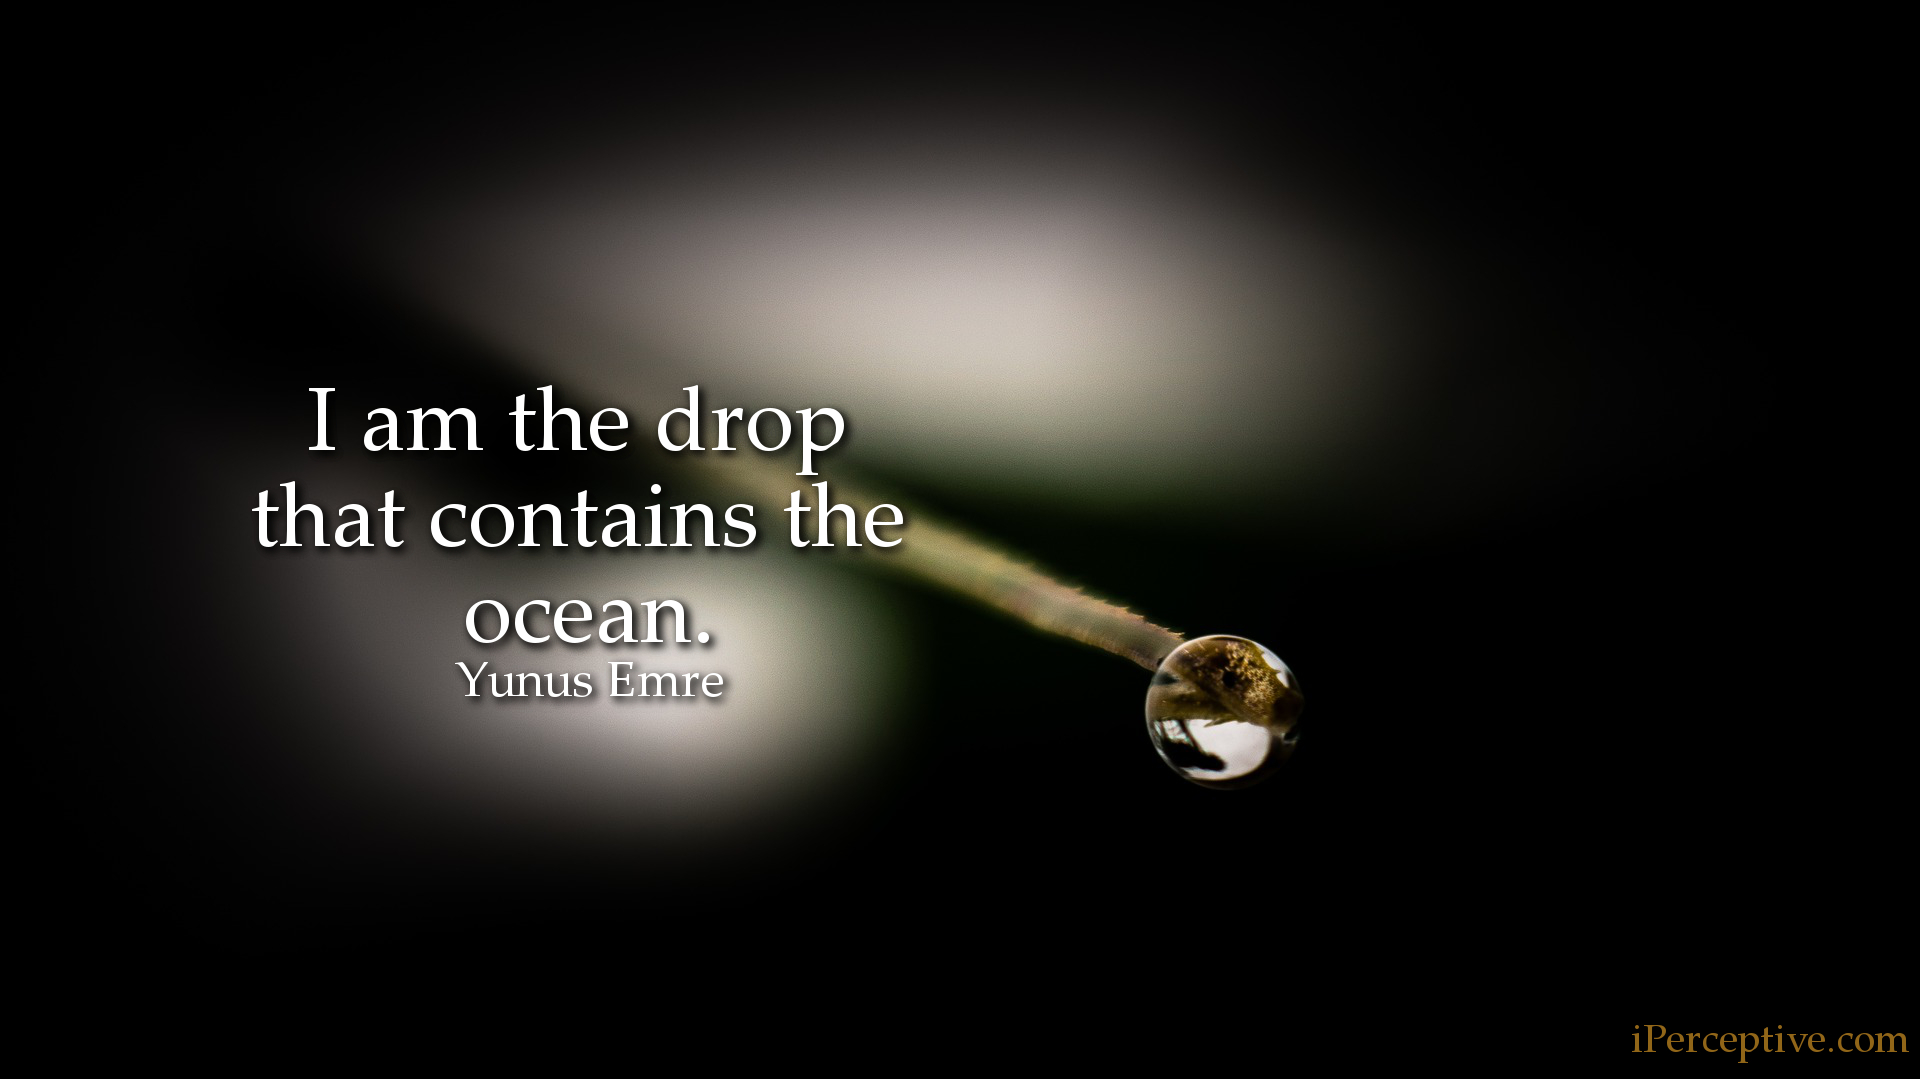 Yunus Emre Sufi Quote: I am the drop that contains the ocean...